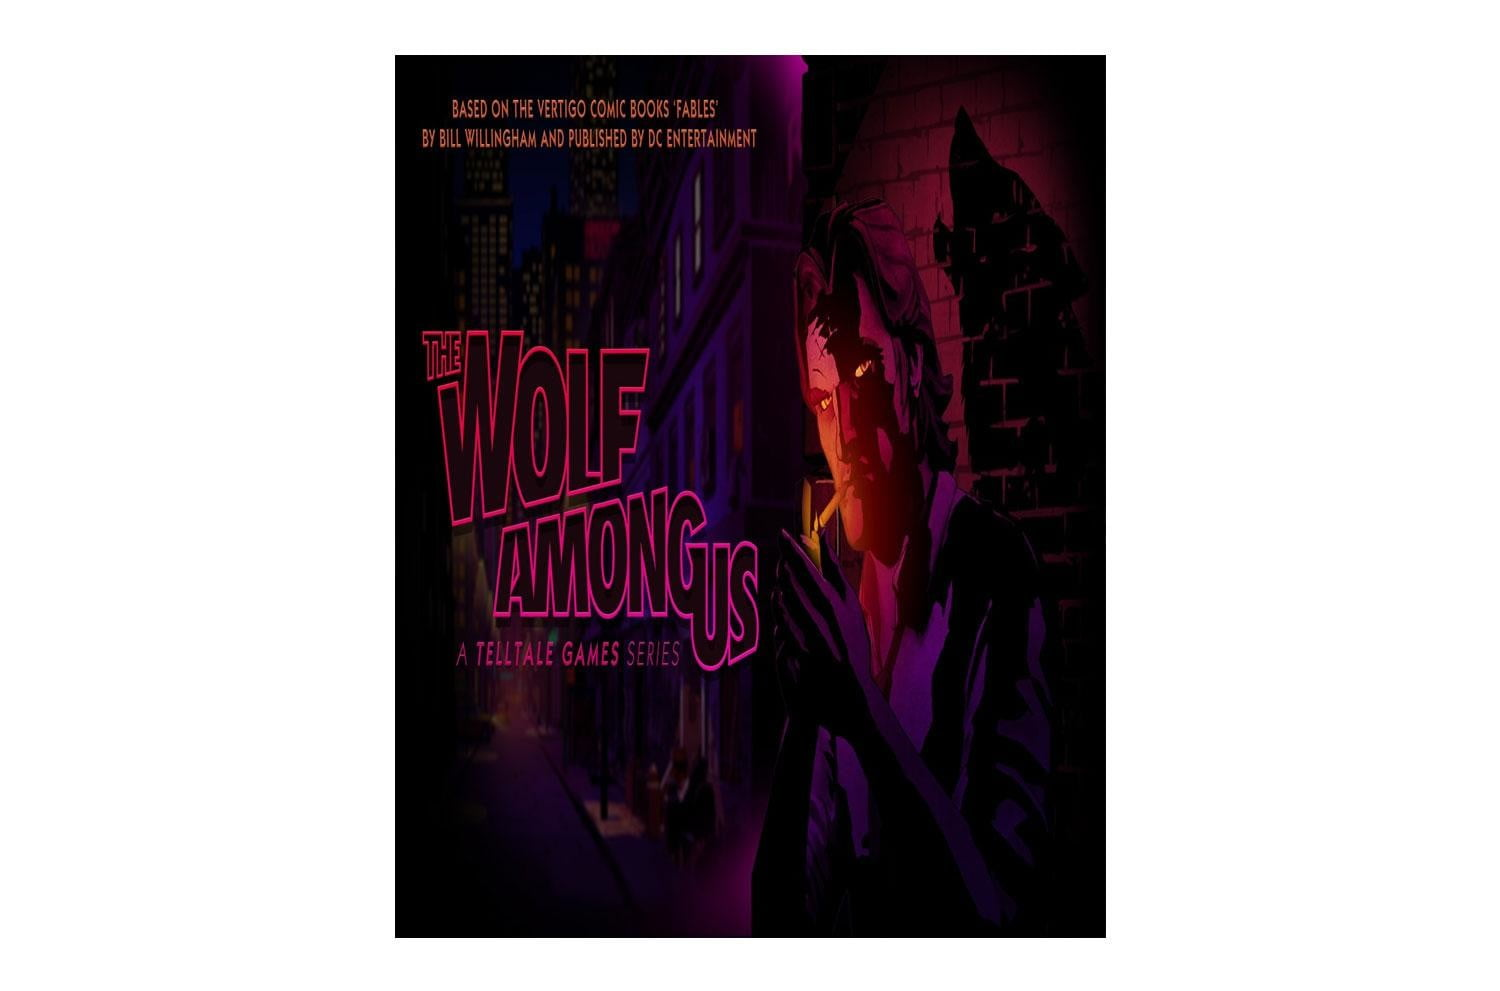 The-Wolf-Among-Us-cover-art